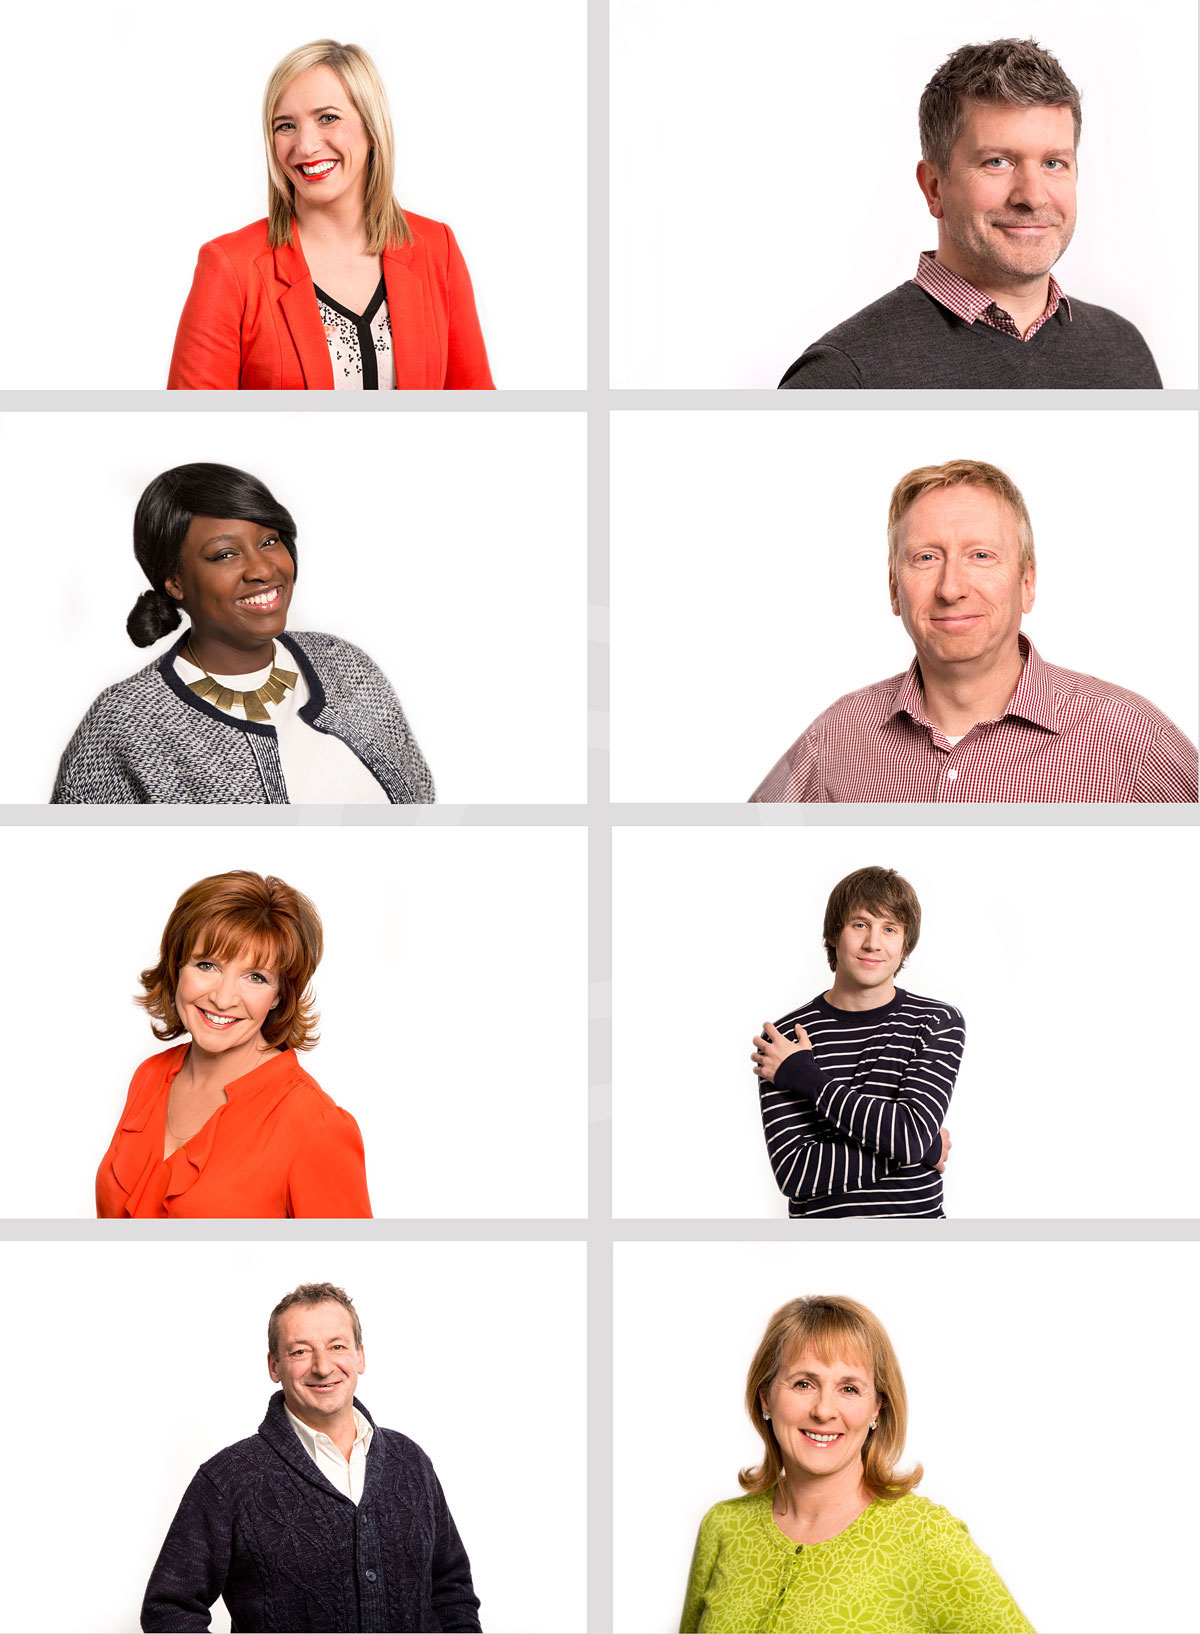 commercial-corporate-photography-york-bbc-portraits-presenters-headshots